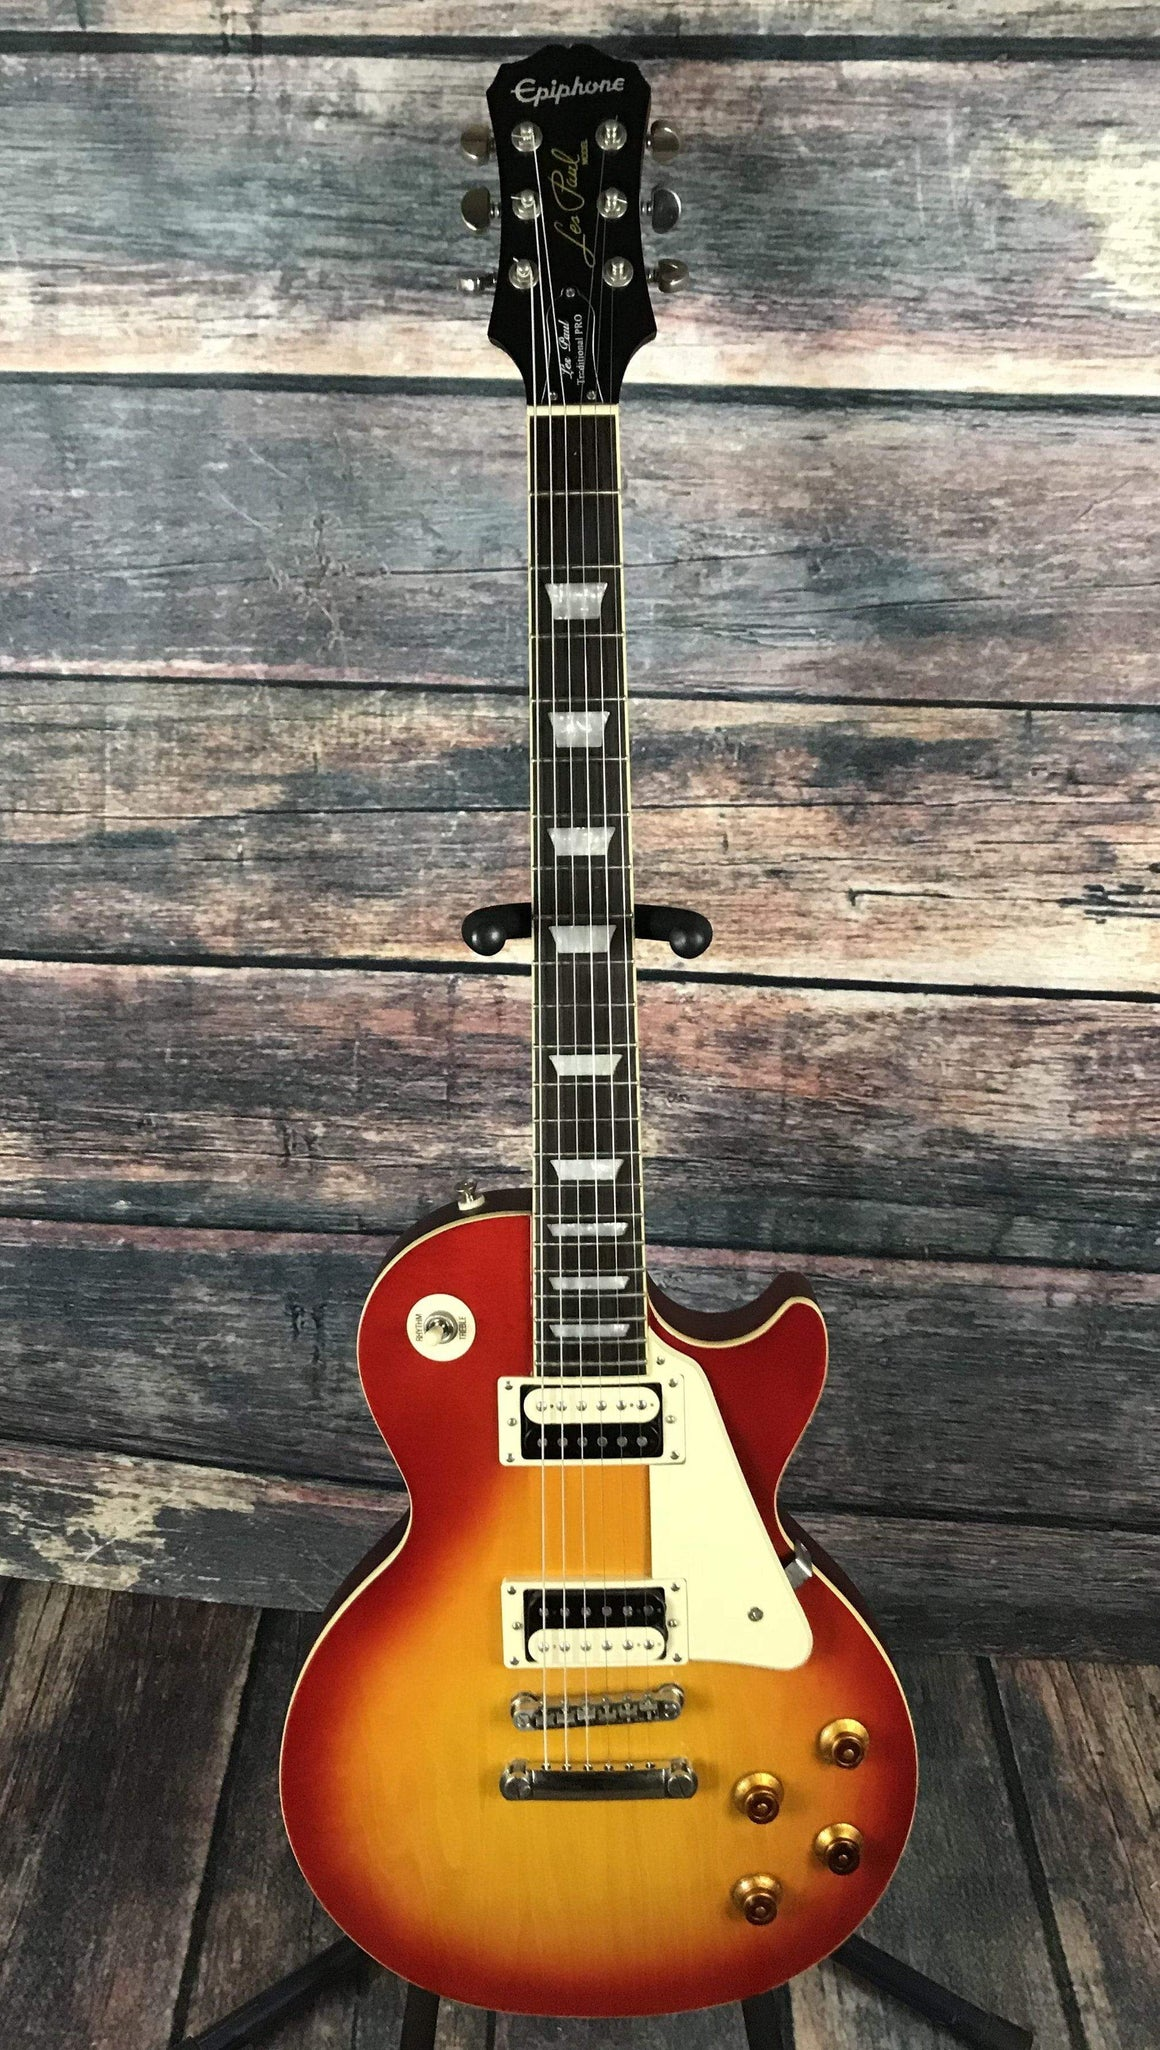 Epiphone Electric Guitar Used Epiphone 2014 Les Paul Traditional Pro Cherry Burst with Gig Bag